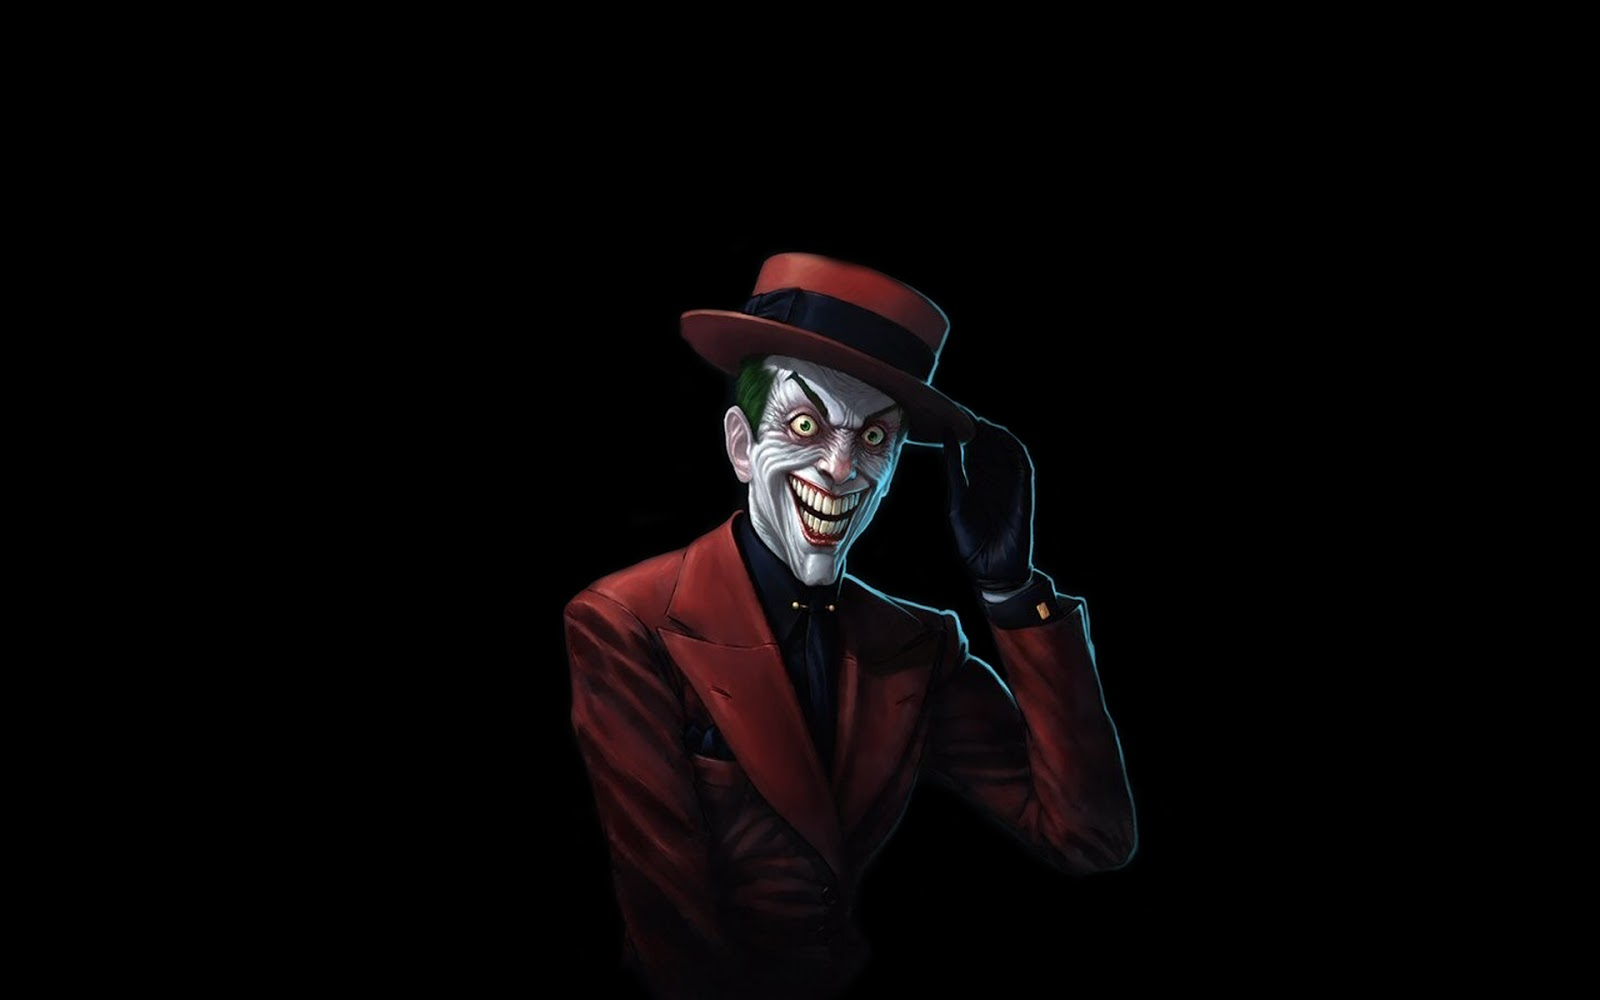 Fondos de Escritorio HD de The Joker   El Guason Batman 1600x1000